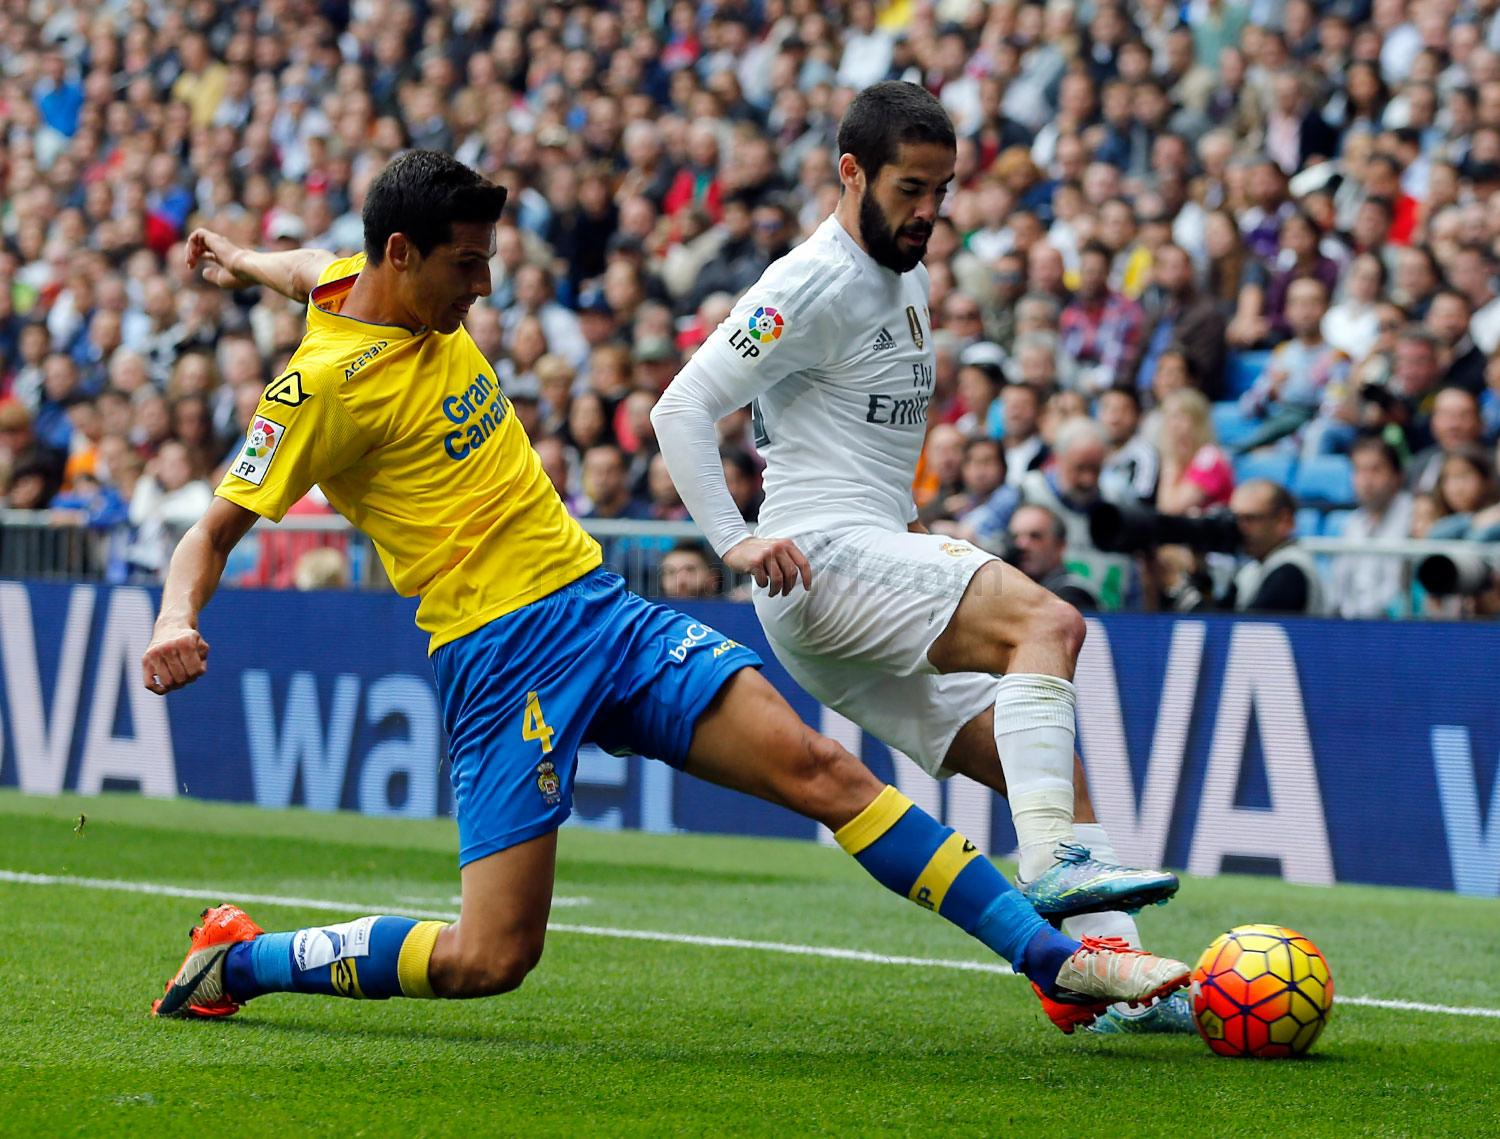 Real Madrid - Real Madrid - Las Palmas - 31-10-2015